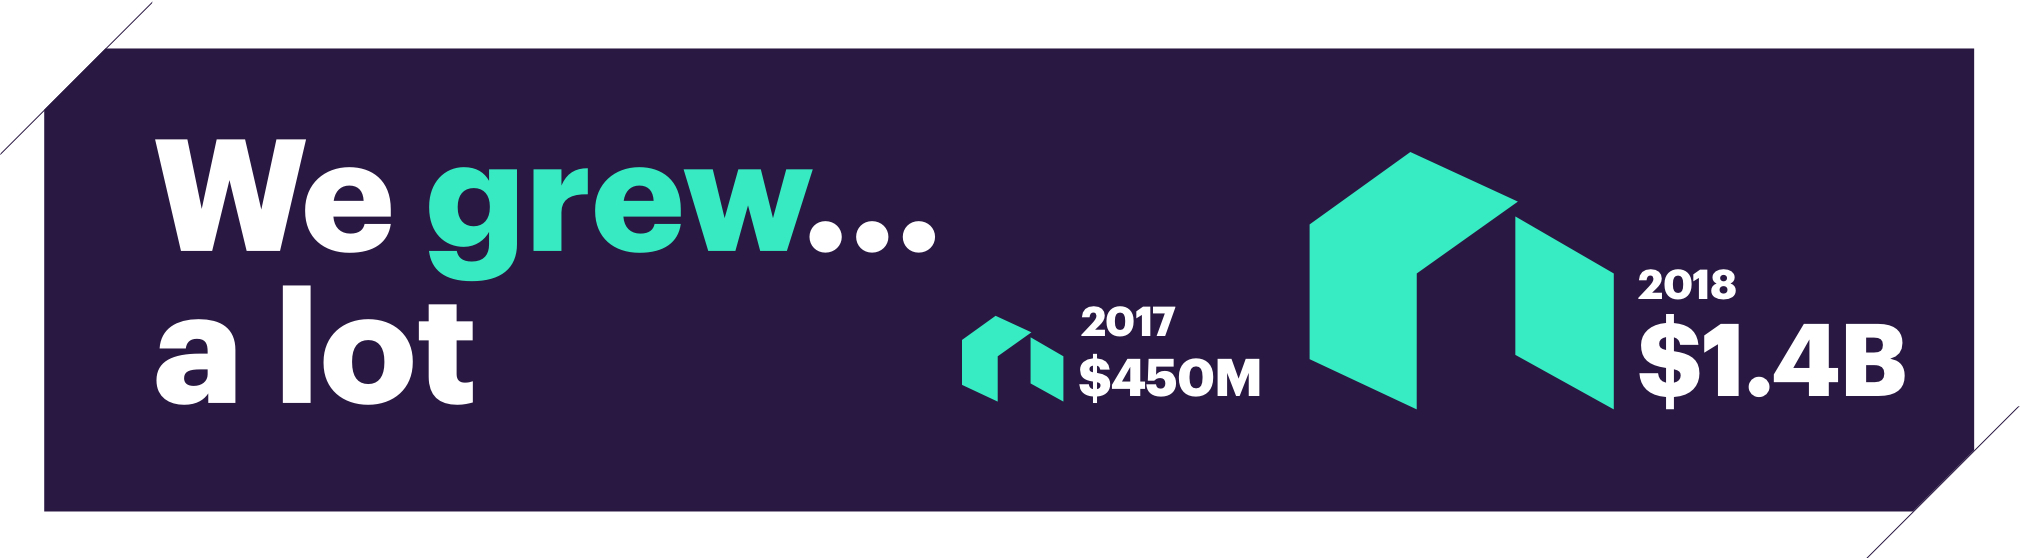 A recap of our biggest wins and changes in 2018